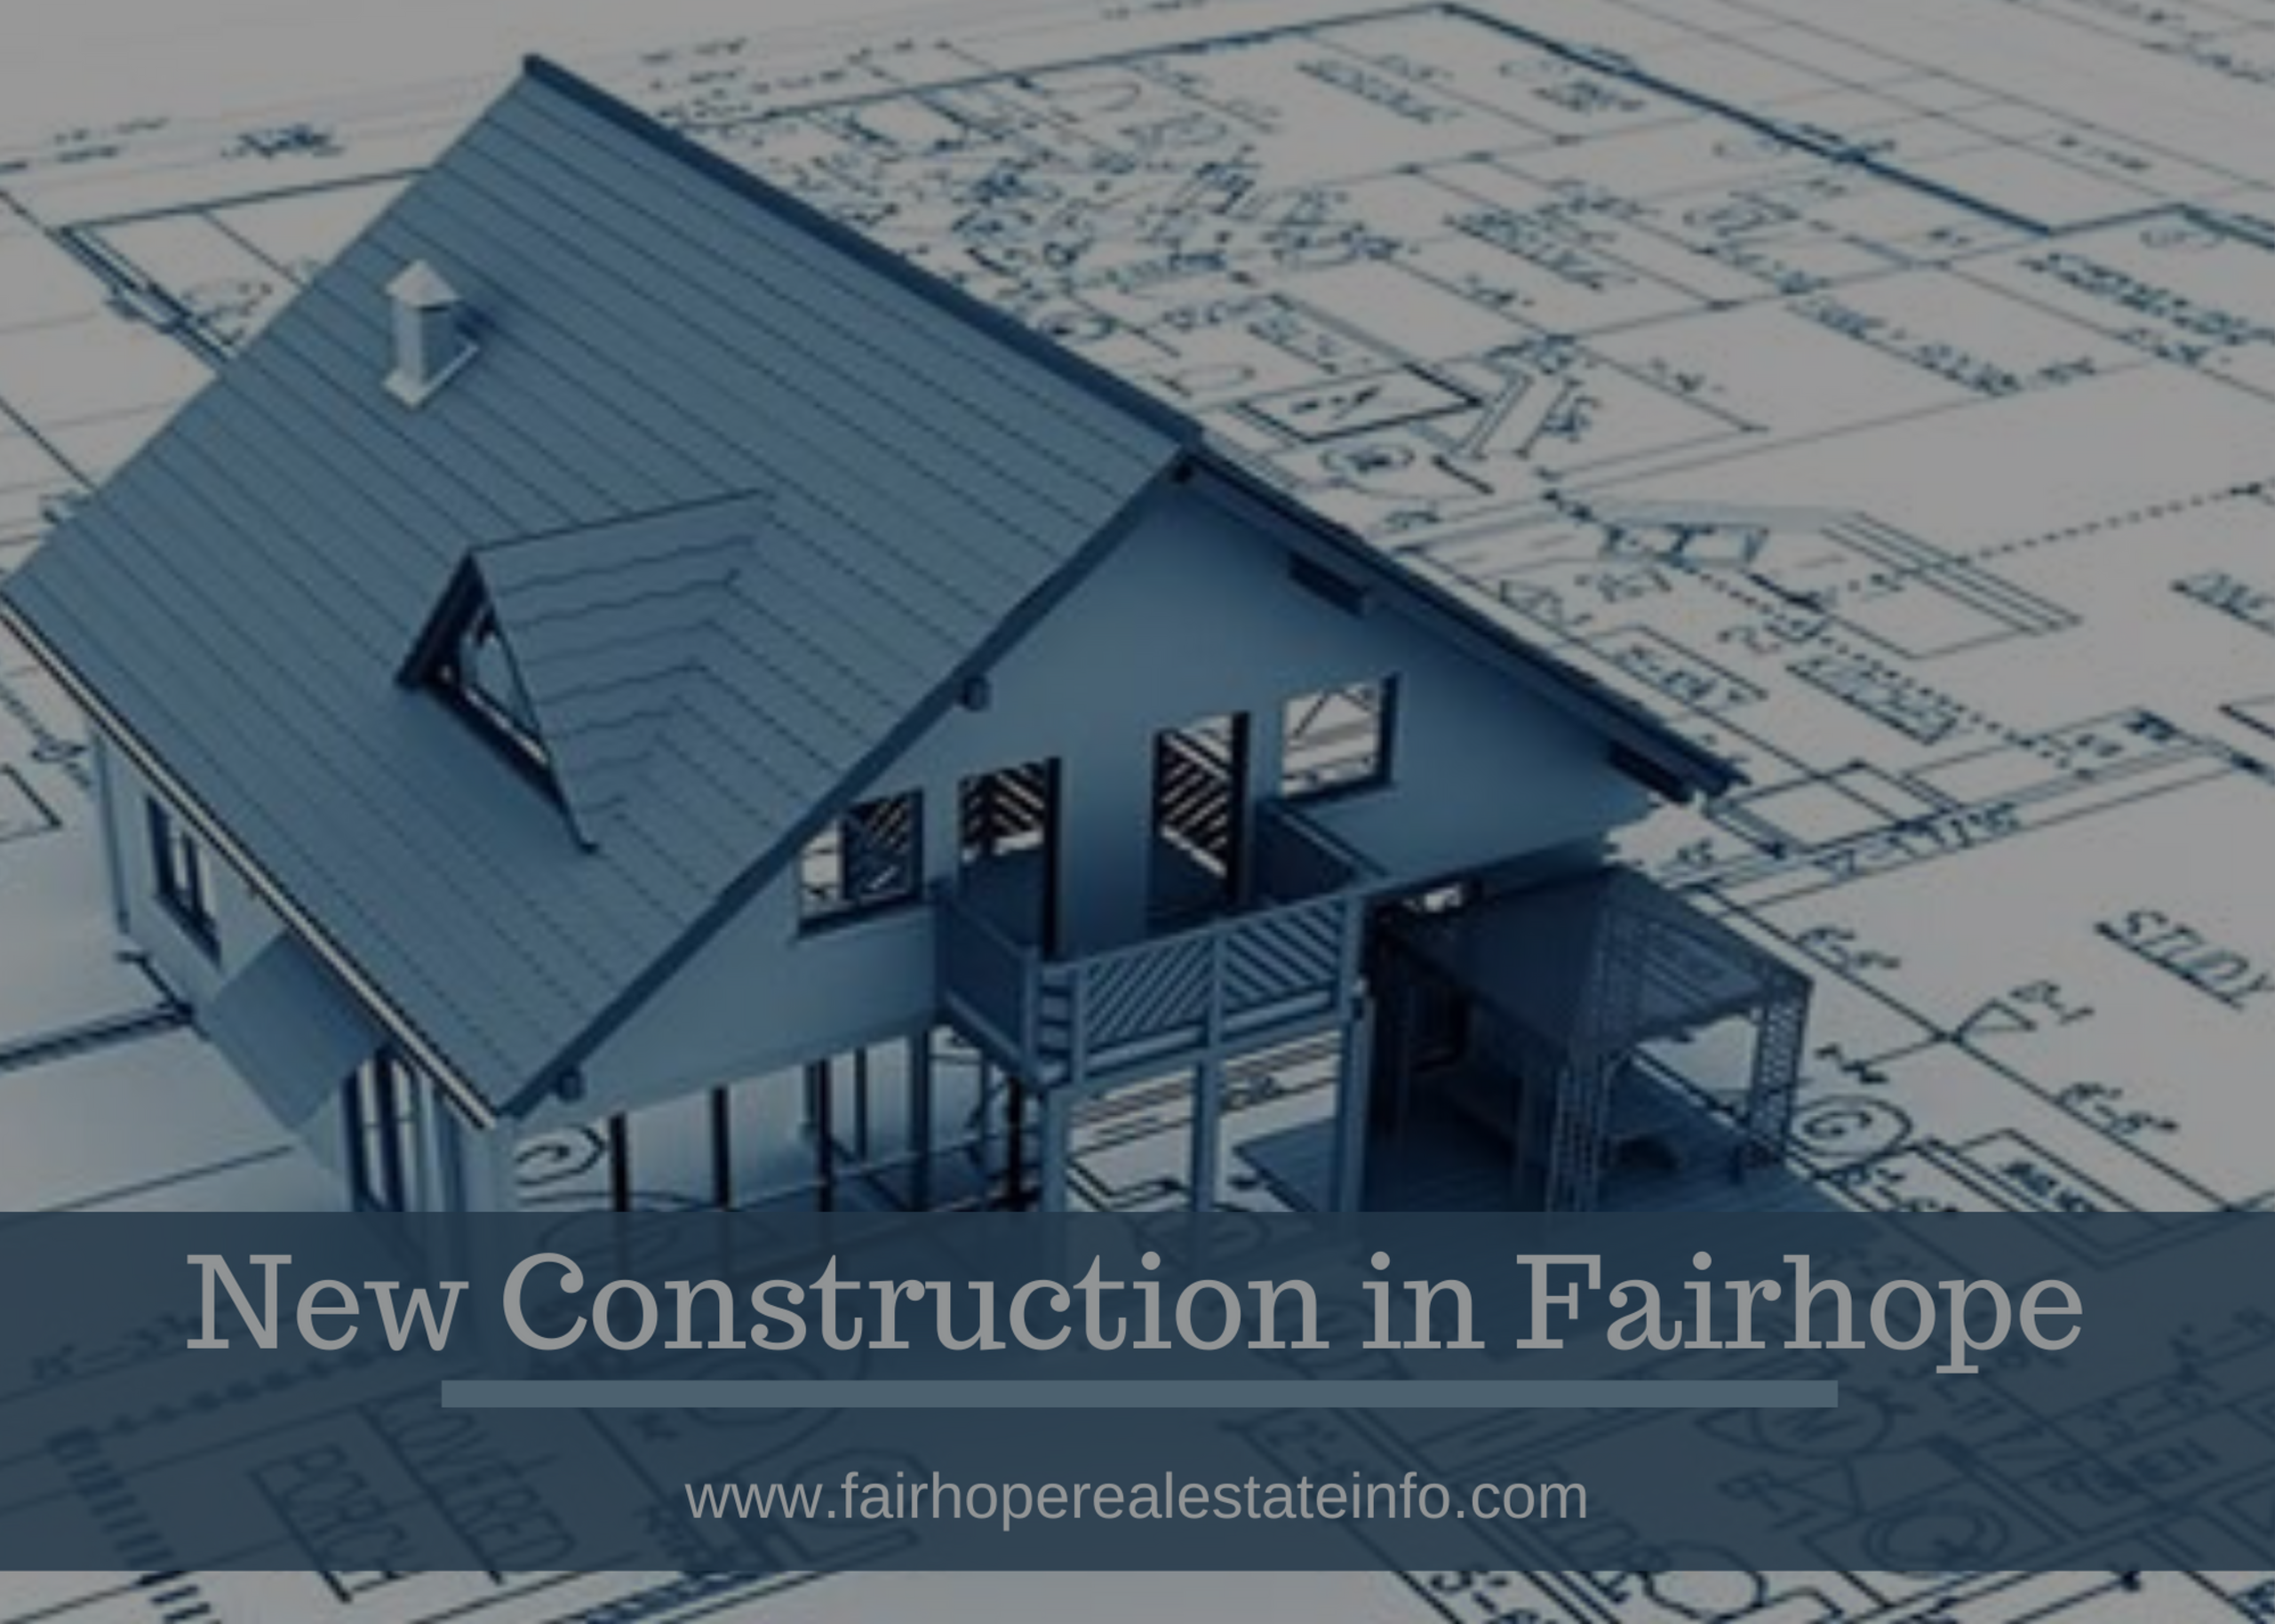 New Construction Overview in Fairhope – November 2019